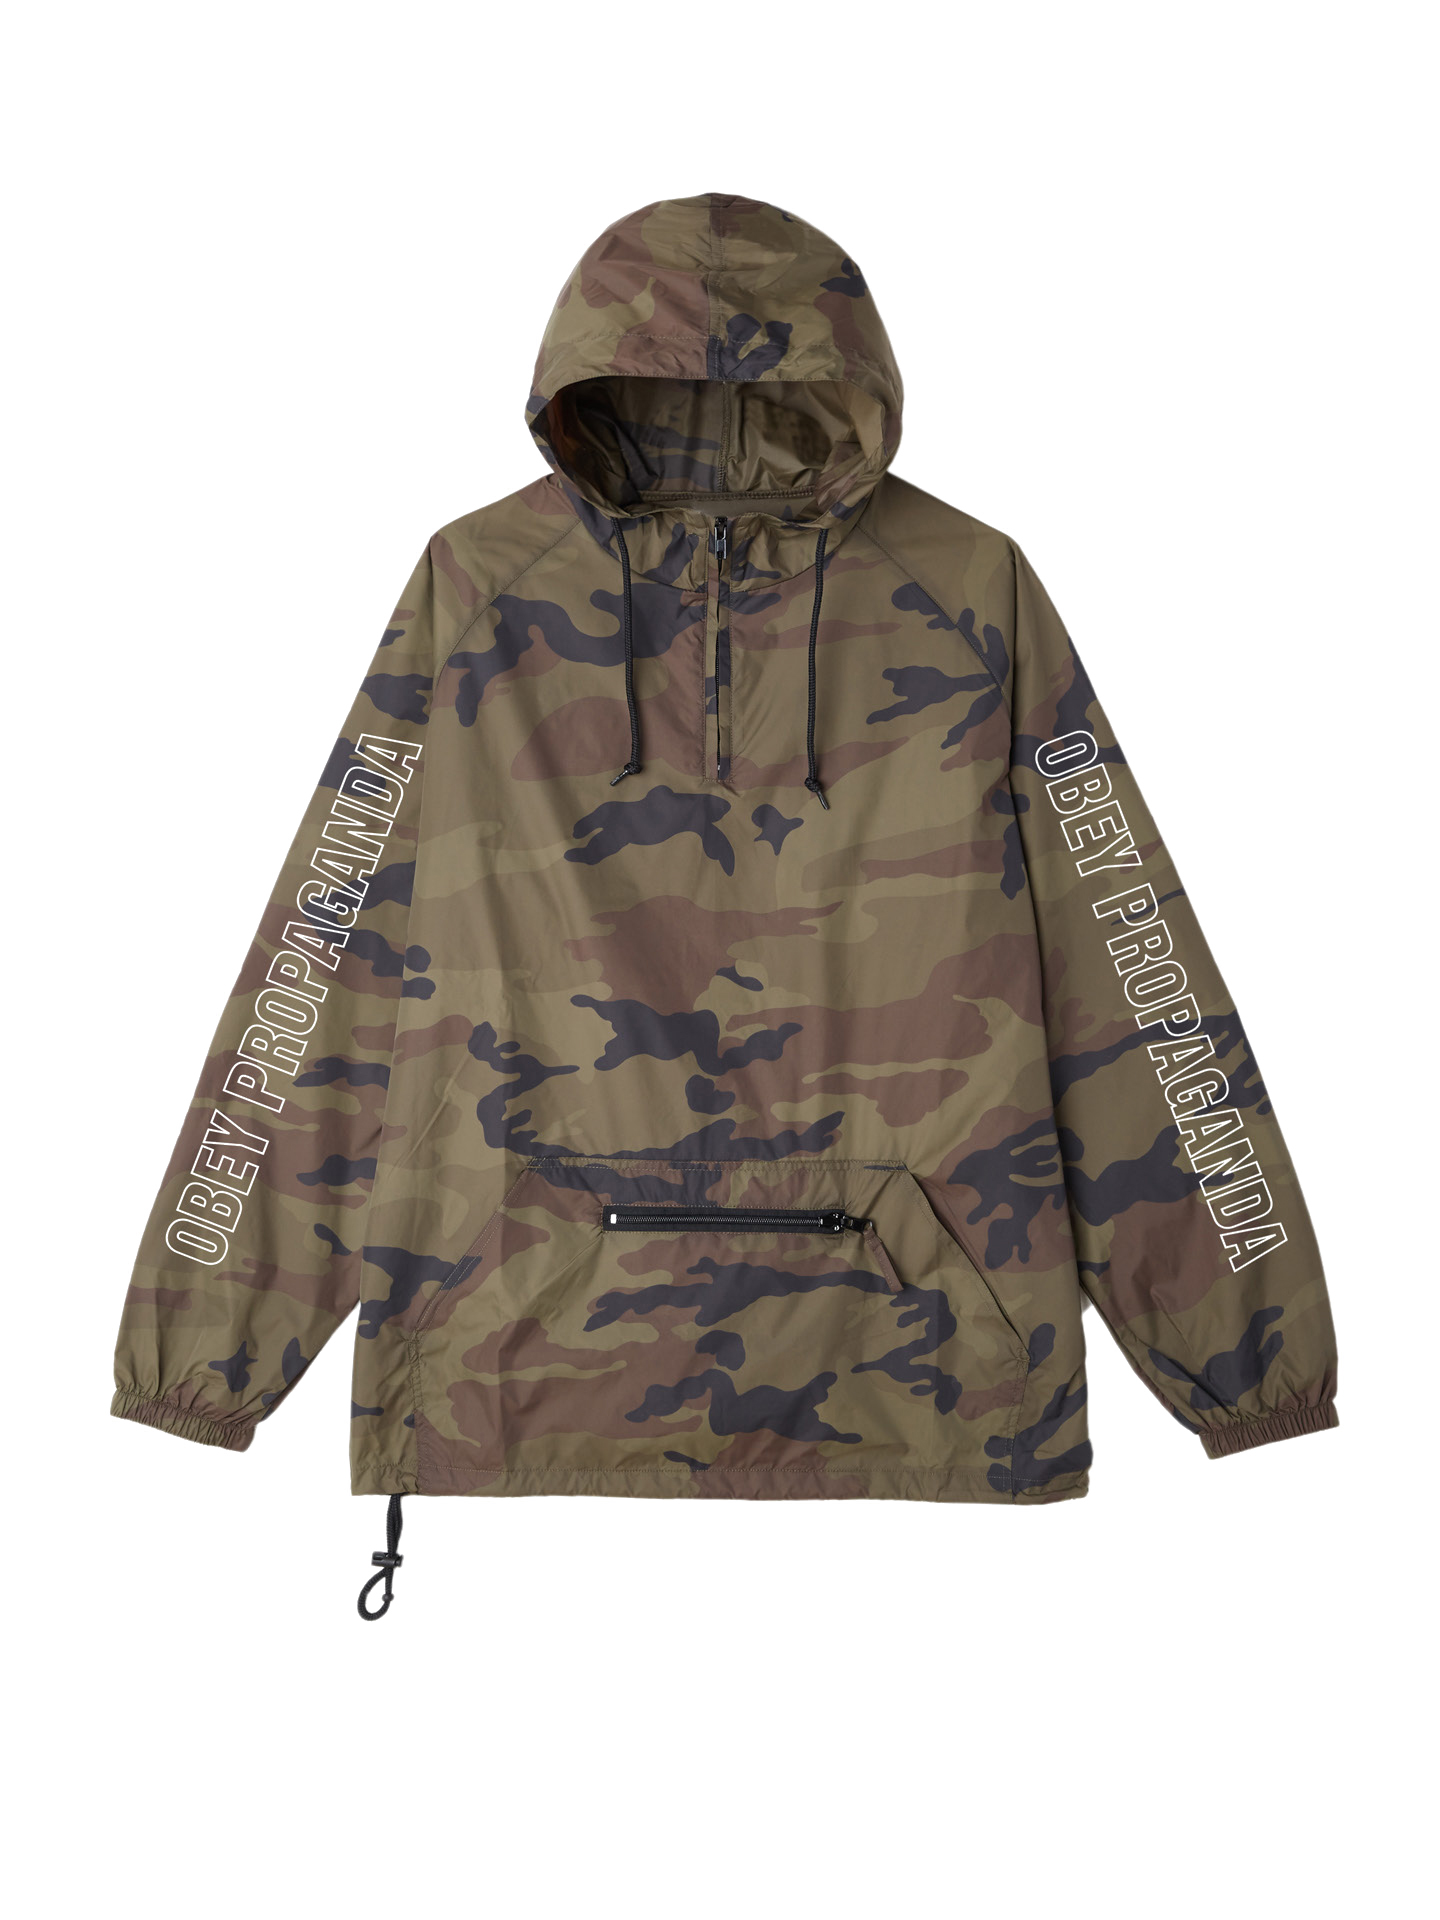 d0a82b2401931 Rough Draft Anorak Hooded Jacket - Obey Clothing UK